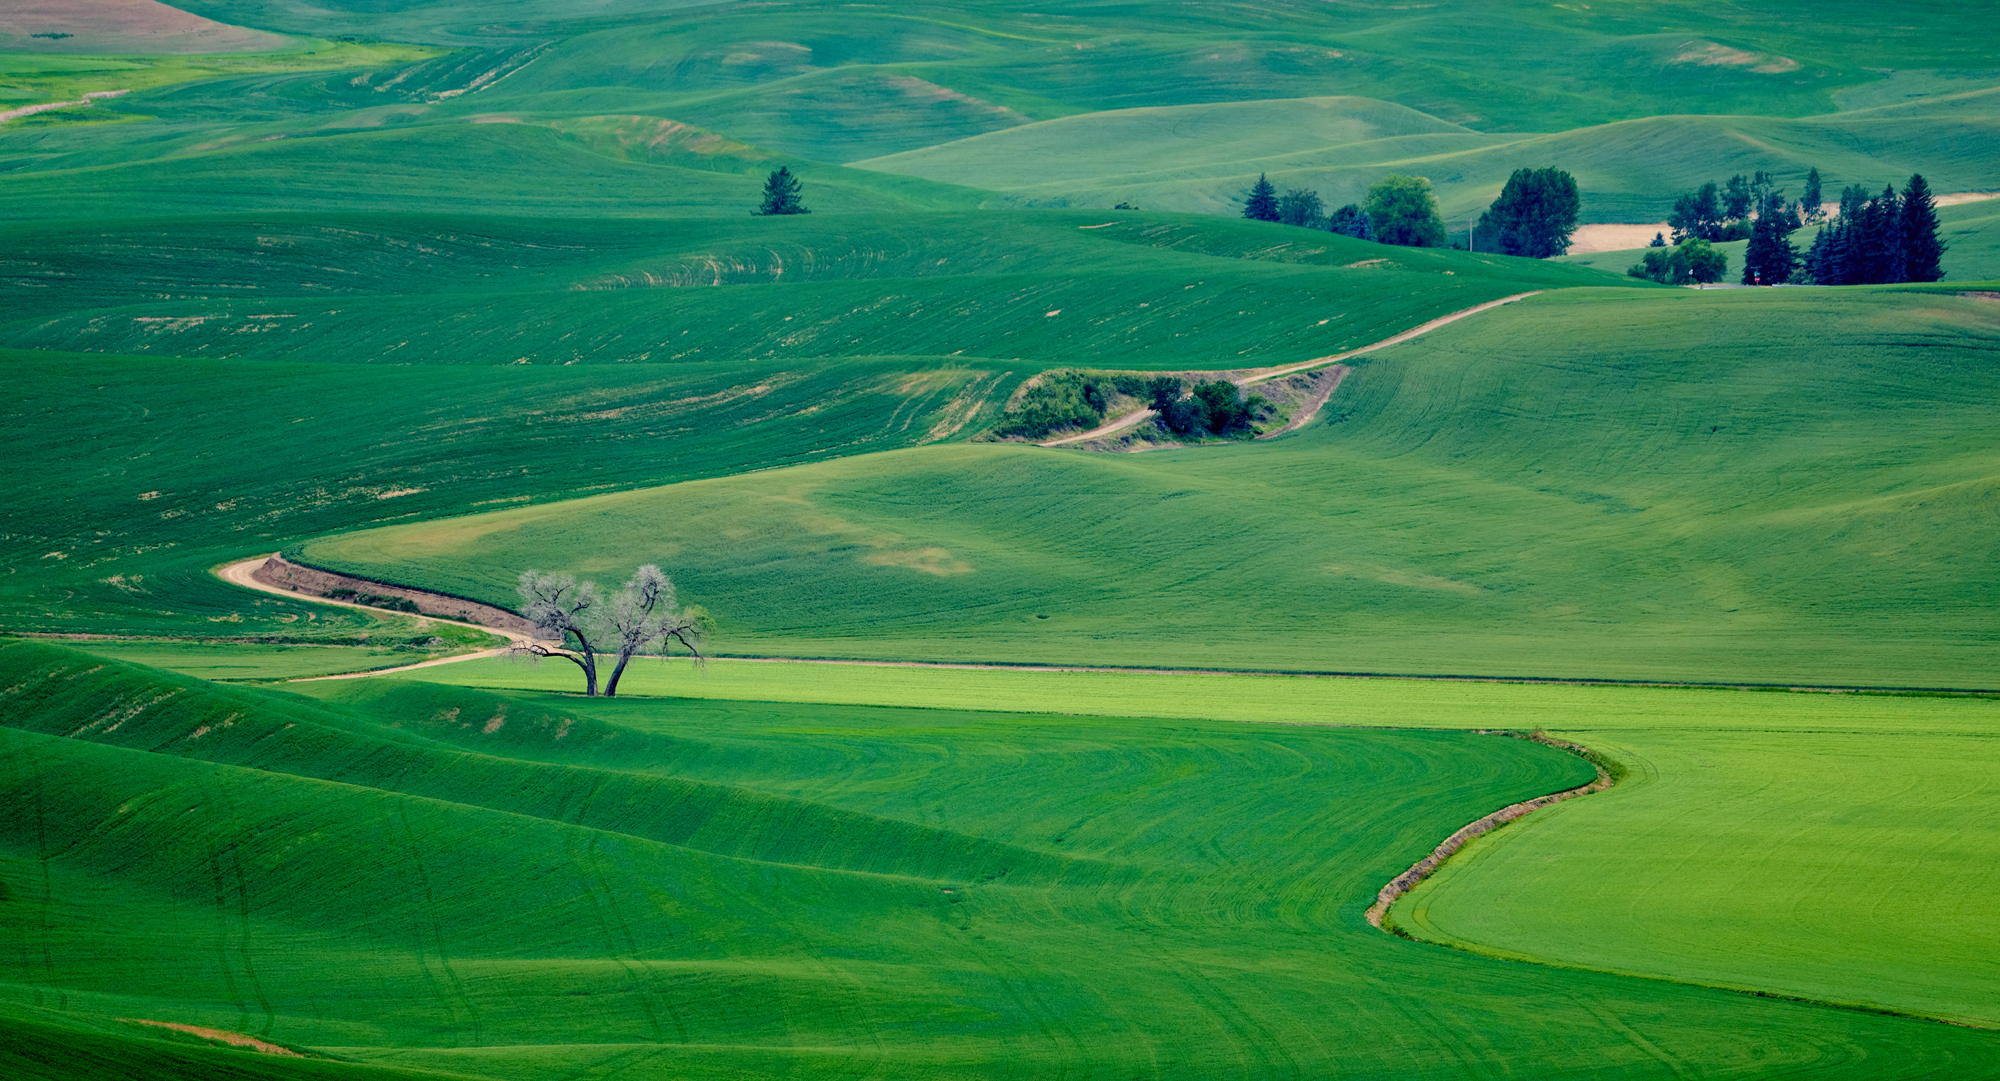 The Lone Tree from above from Steptoe Butte